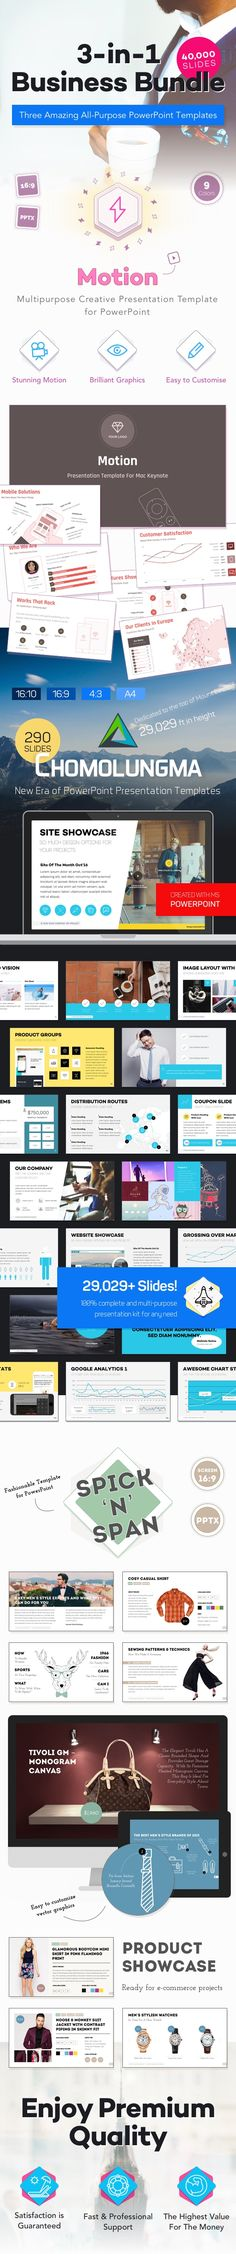 Djawa Business Presentation Template #modern #presentation - business presentation template